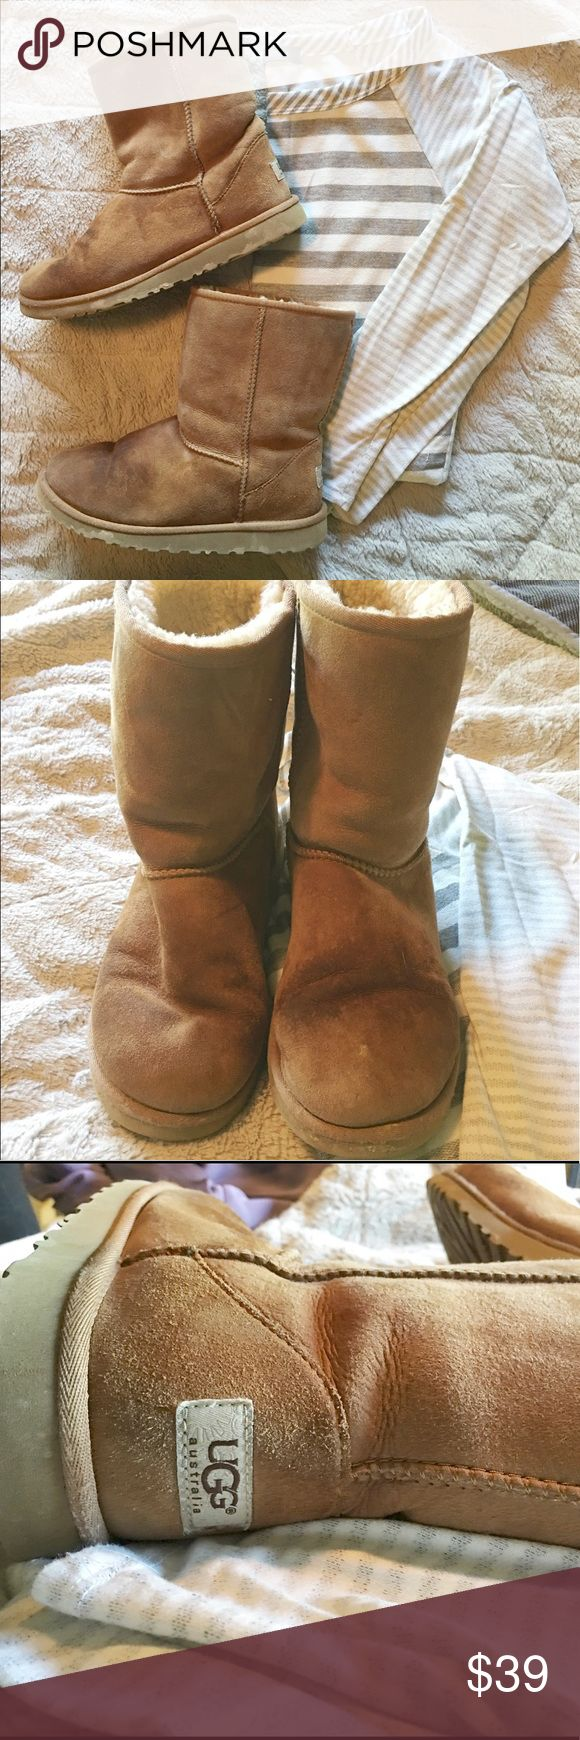 Chestnut UGG boots Mid height chestnut Uggs, size 6. Normal wear (shown in photos) but still lots of life and warmth left in them 💕 UGG Shoes Winter & Rain Boots